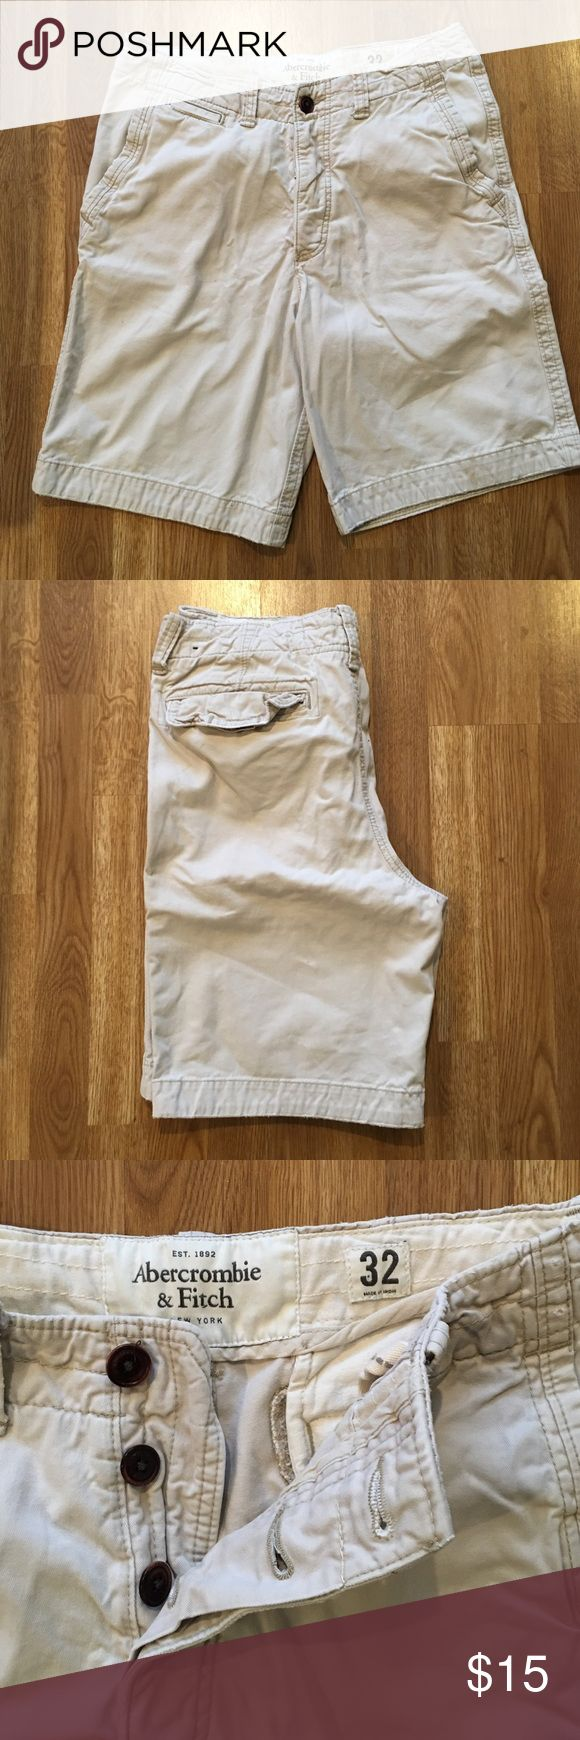 Abercrombie & Fitch Men's Shorts These shorts are in great condition! They are from Abercrombie & Fitch and size 32 waist. They are a light khaki color. They have a button-fly. Abercrombie & Fitch Shorts Flat Front